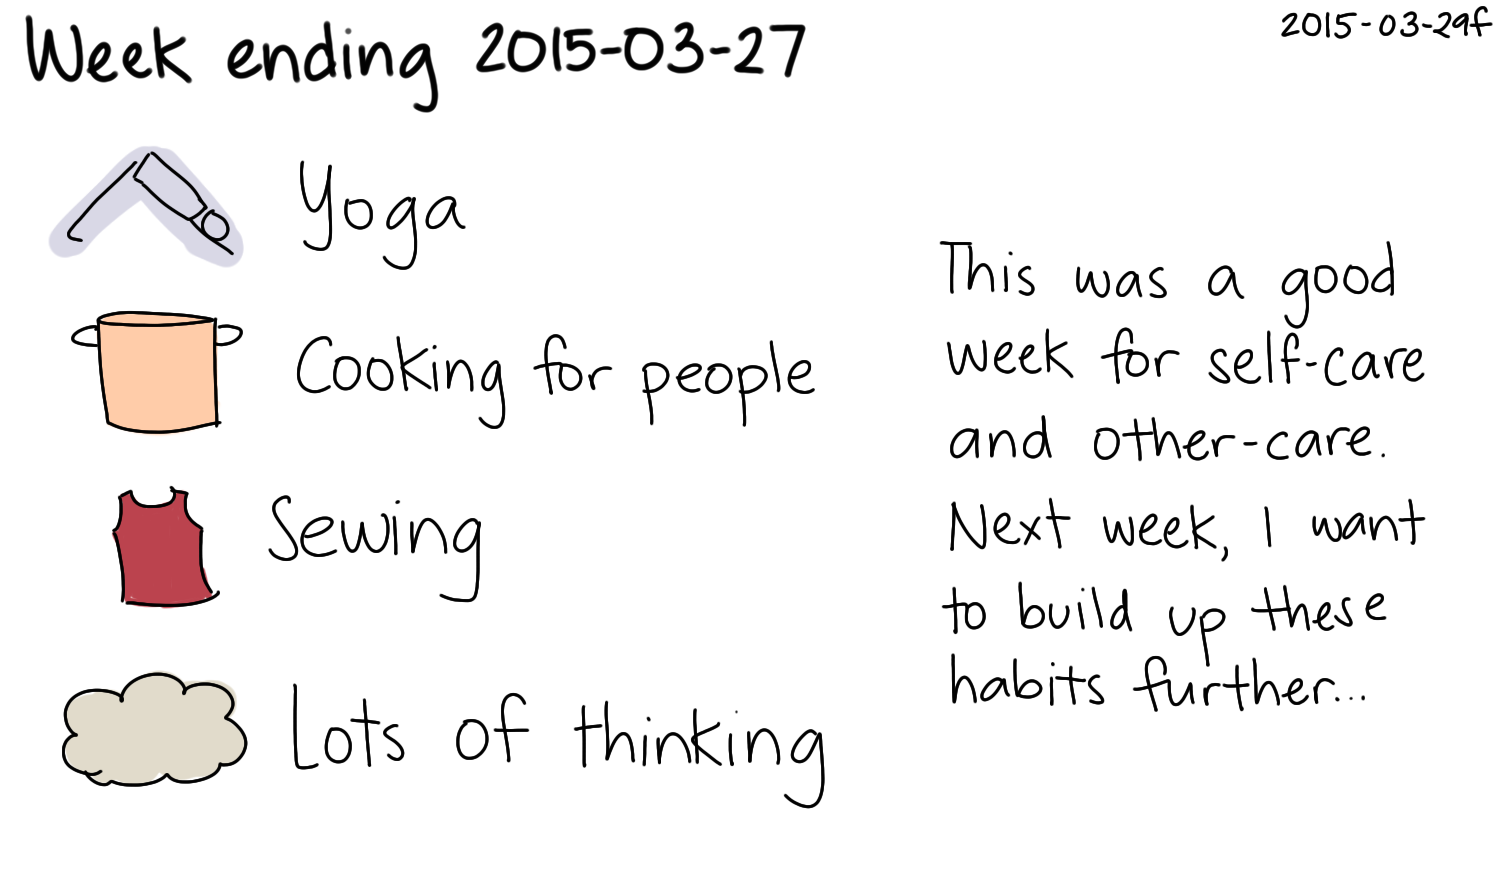 2015-03-29f Week ending 2015-03-27 -- index card #weekly.png